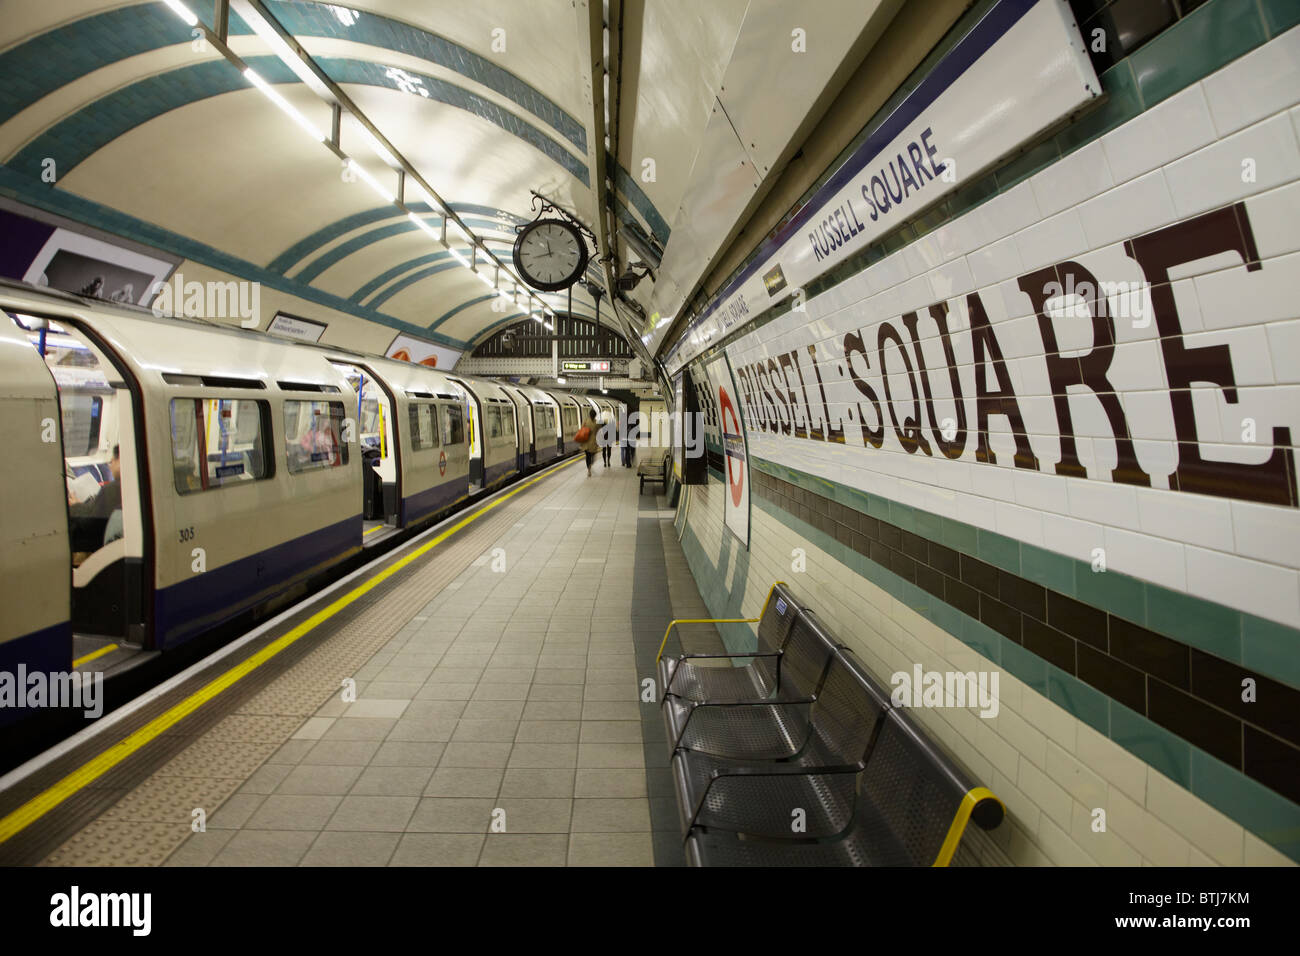 Russell Square Tube Station, London, England, United Kingdom - Stock Image